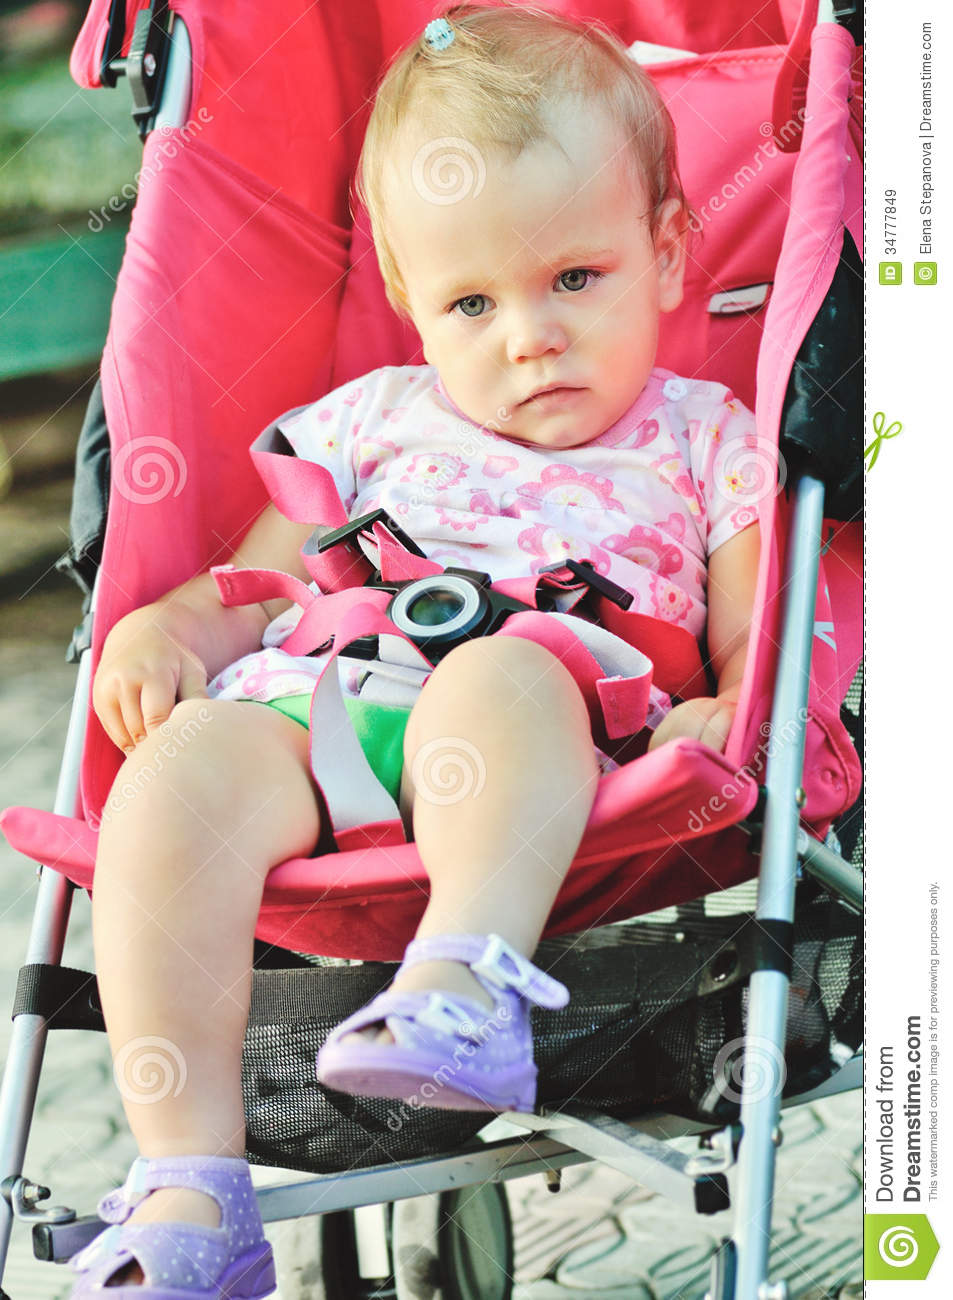 Baby Pram Or Pushchair Baby In Stroller Royalty Free Stock Images Image 34777849